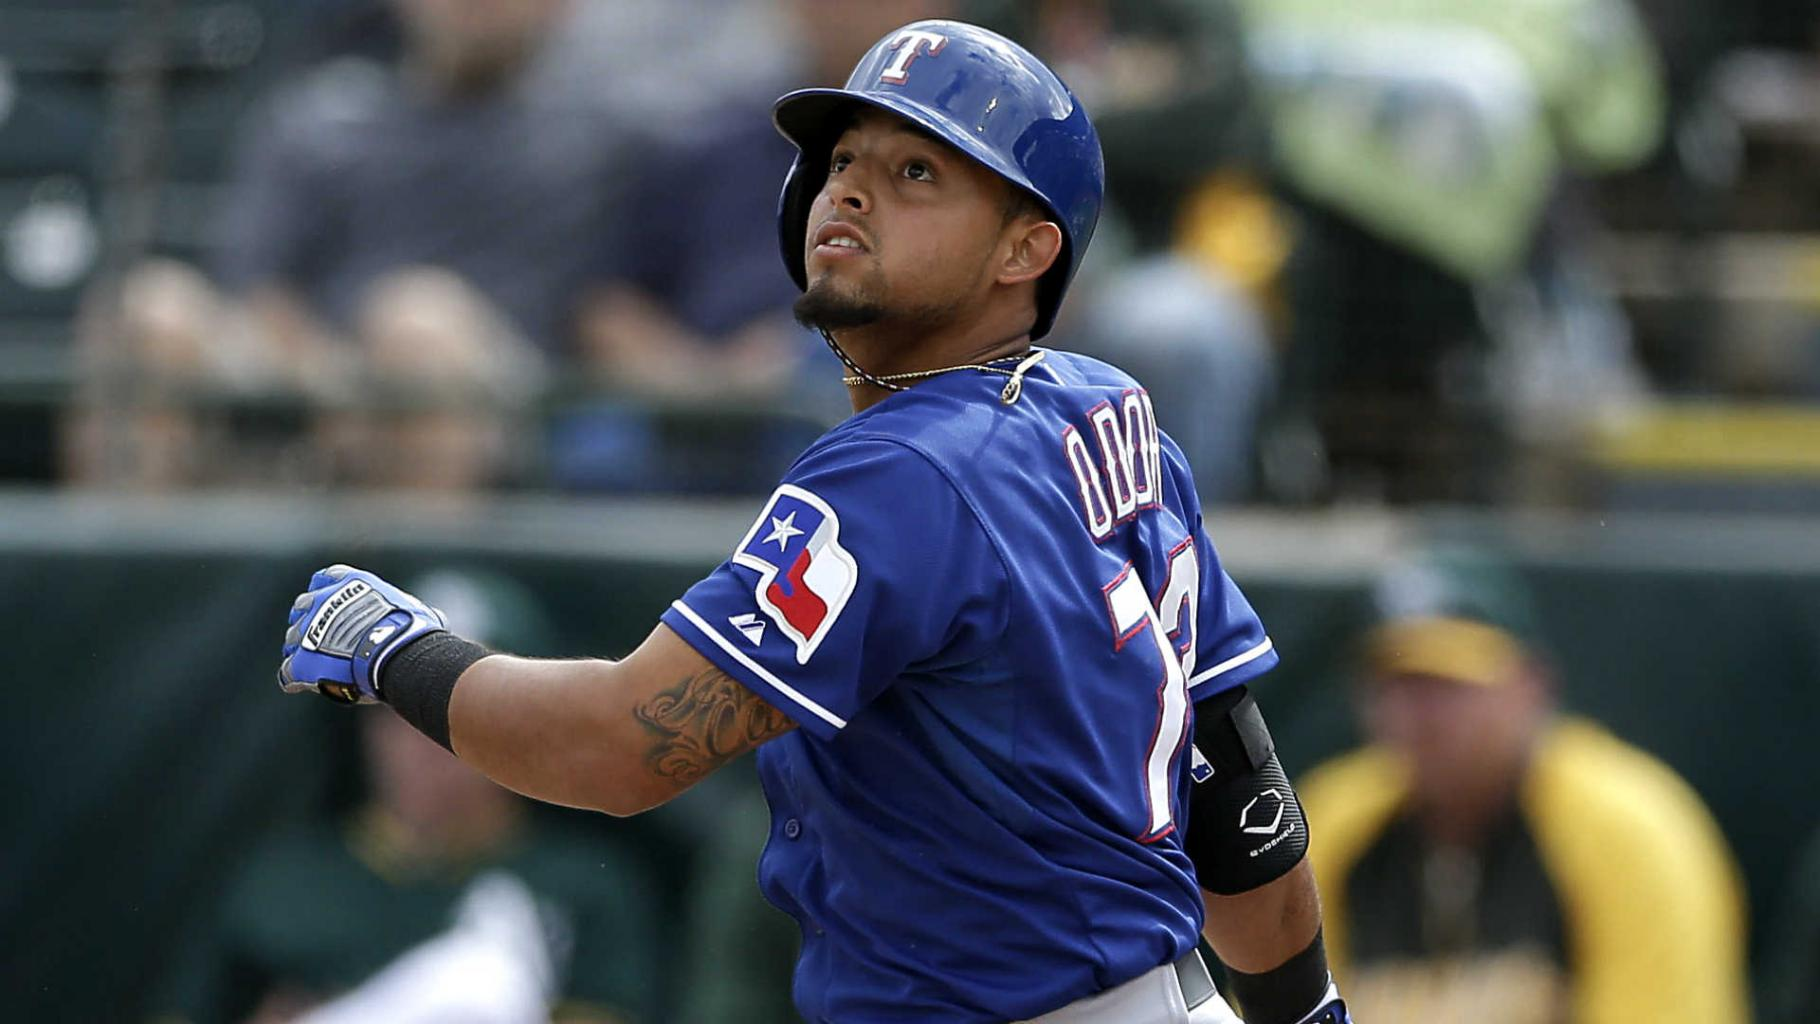 Get To Know: Rangers Prospect Rougned Odor